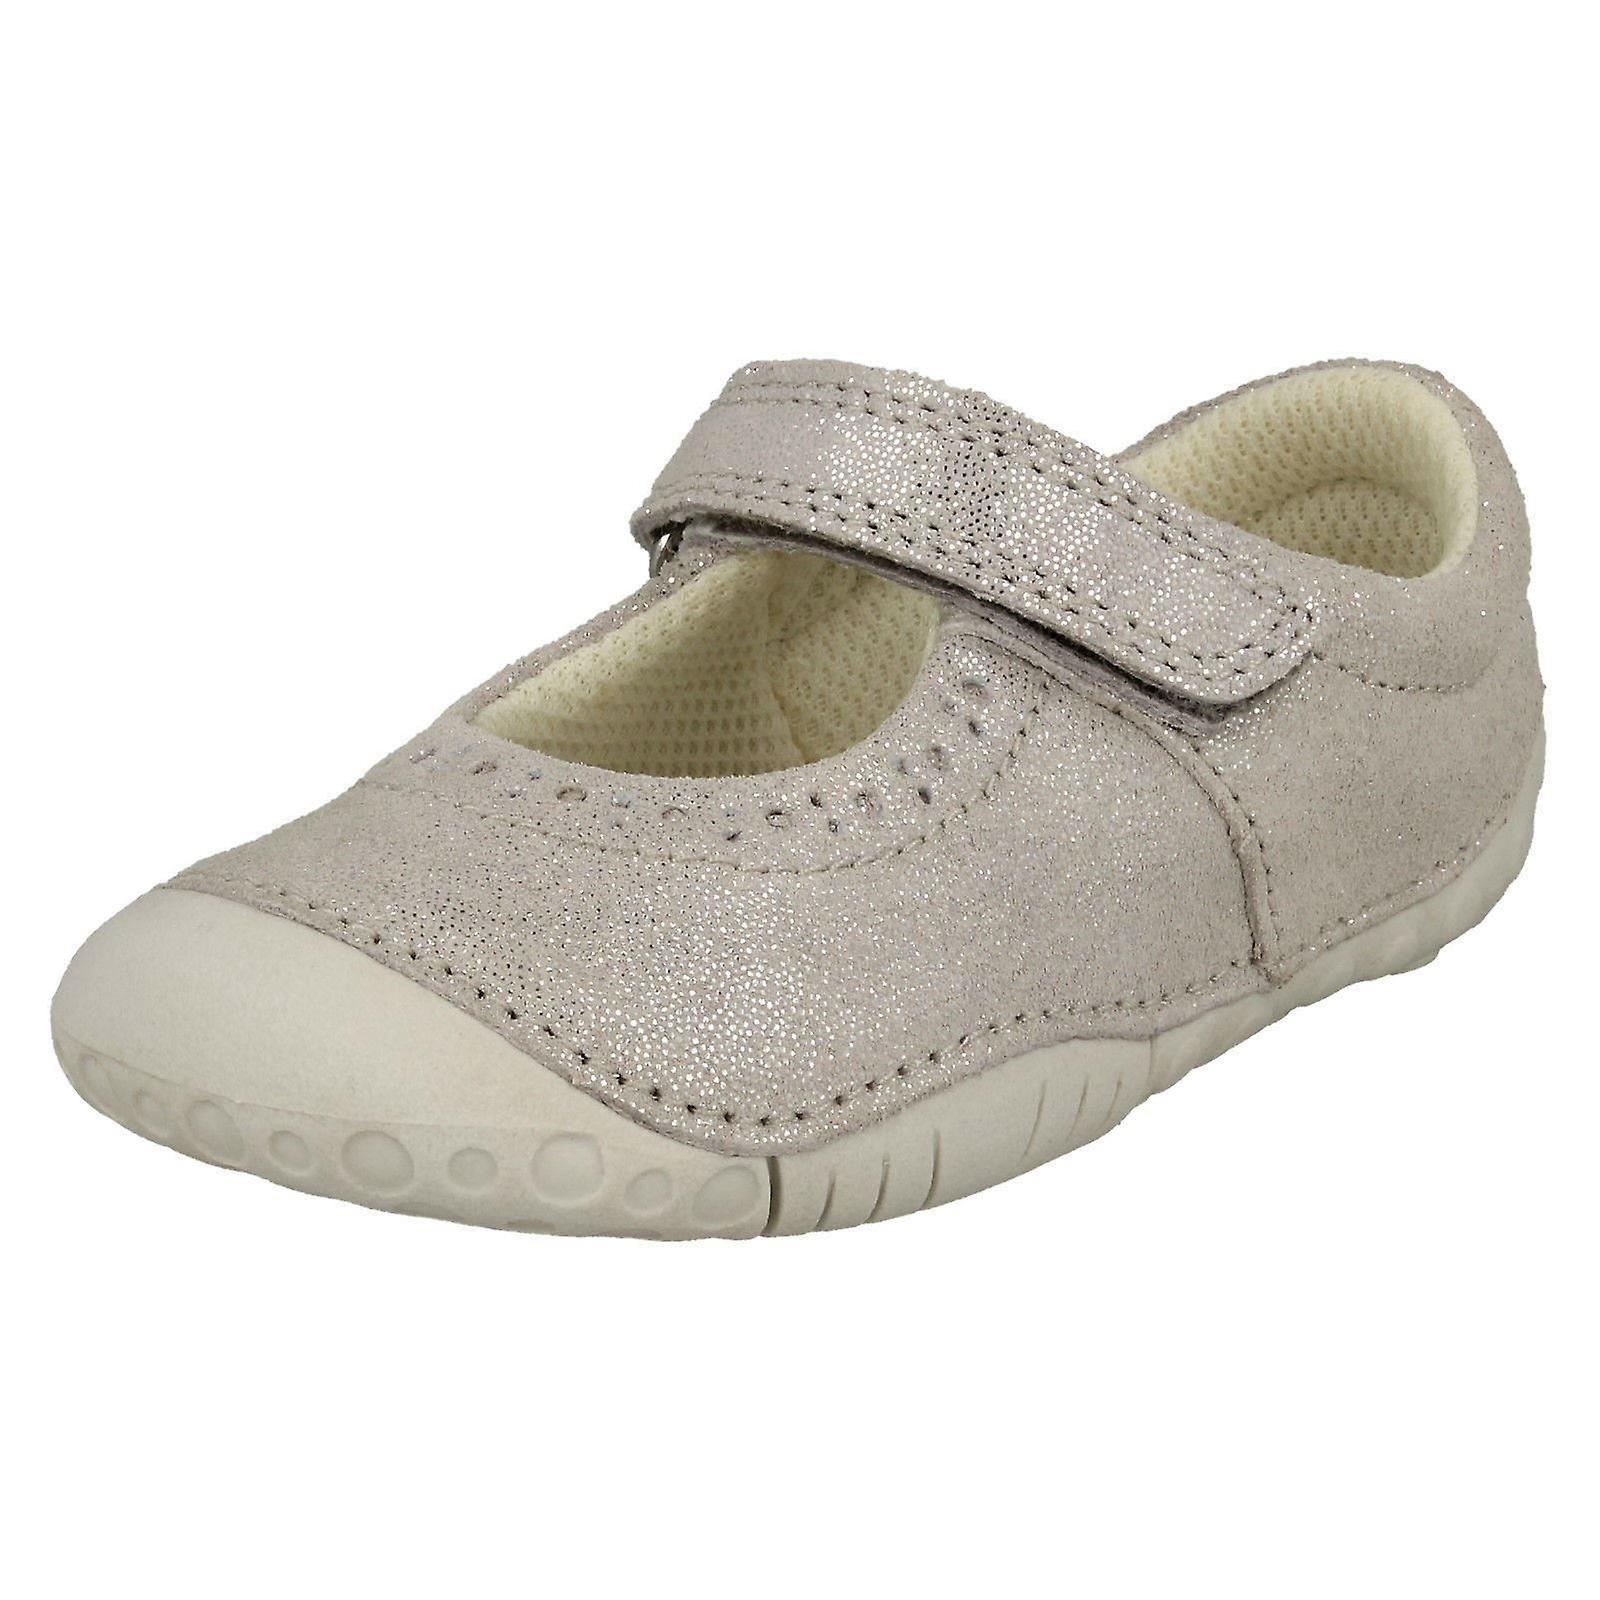 Filles, chaussures occasionnelles Startrite croisière - argent Nubuck - UK Taille 4F - UE Taille 20 - Taille US 5